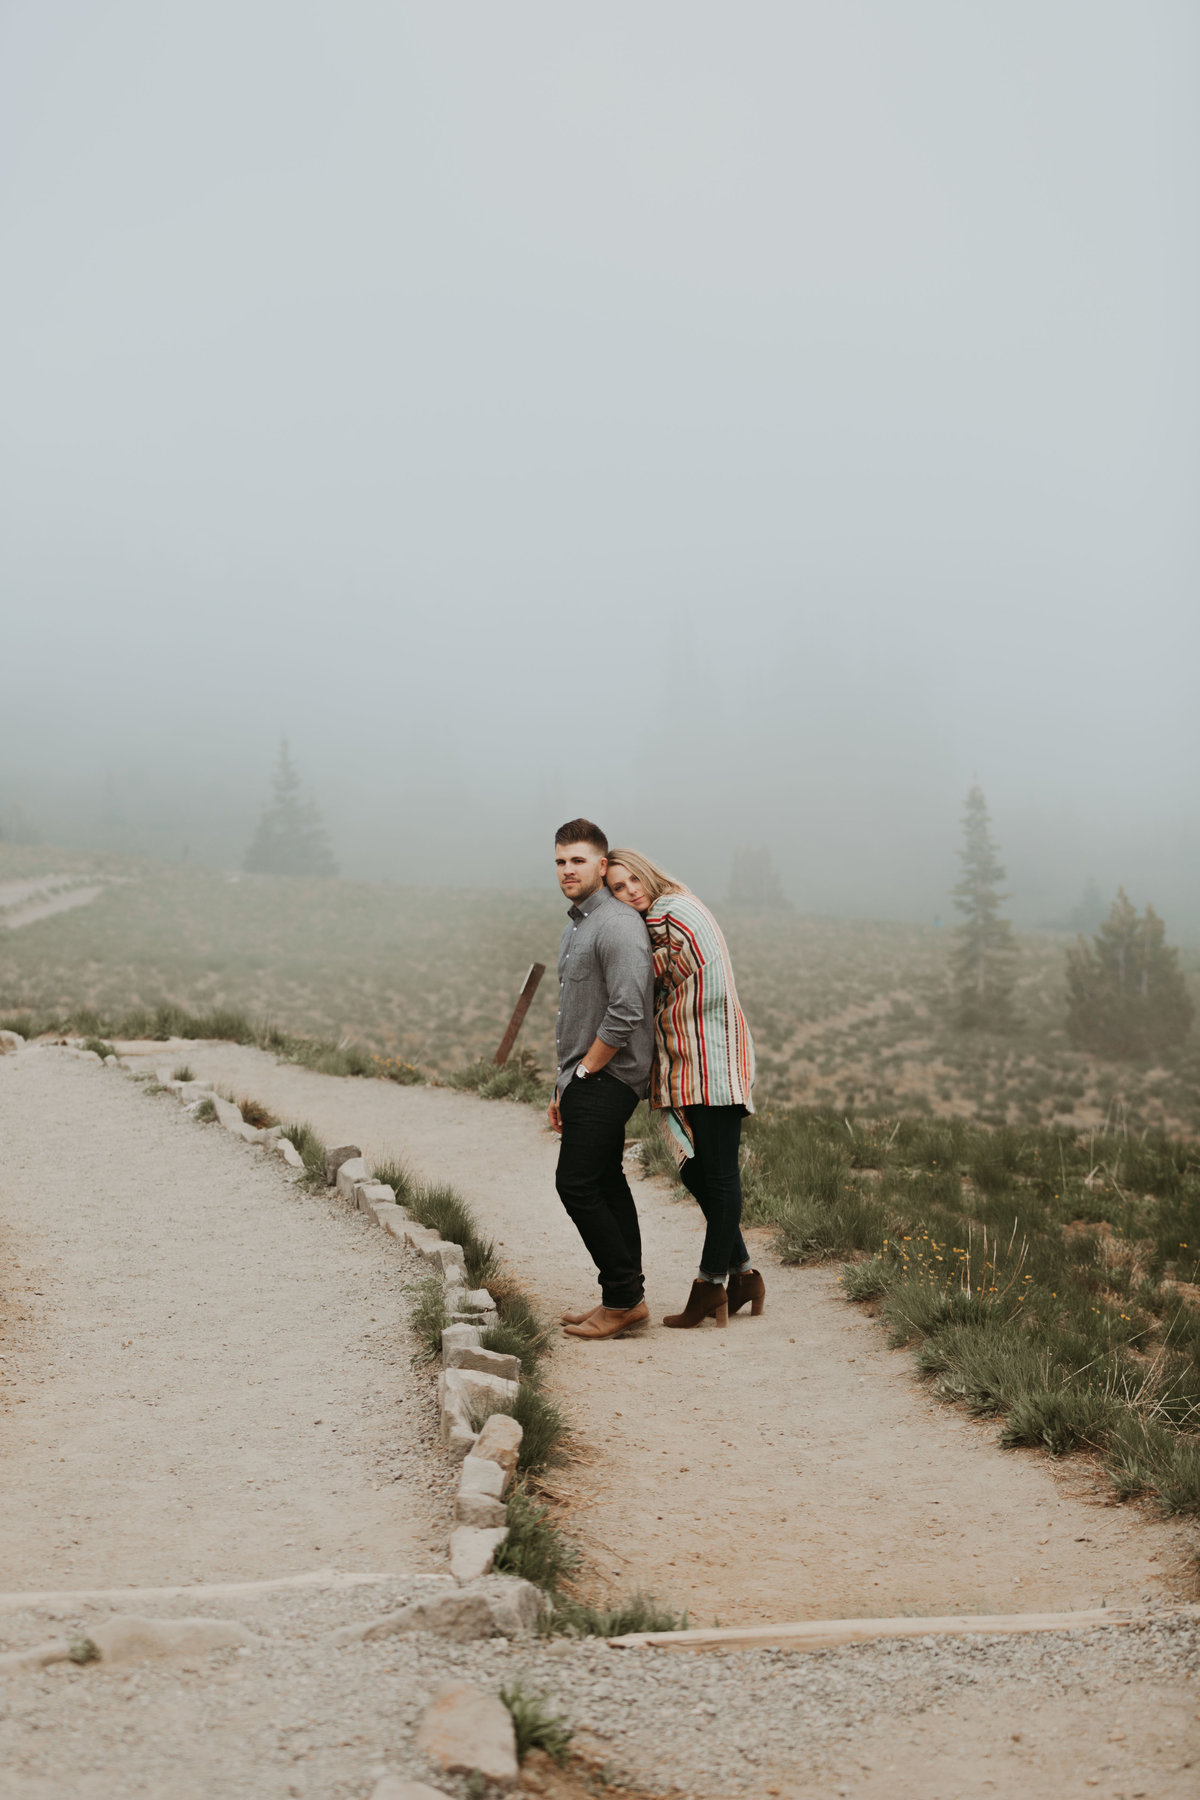 Marnie_Cornell_Photography_Engagement_Mount_Rainier_RK-203